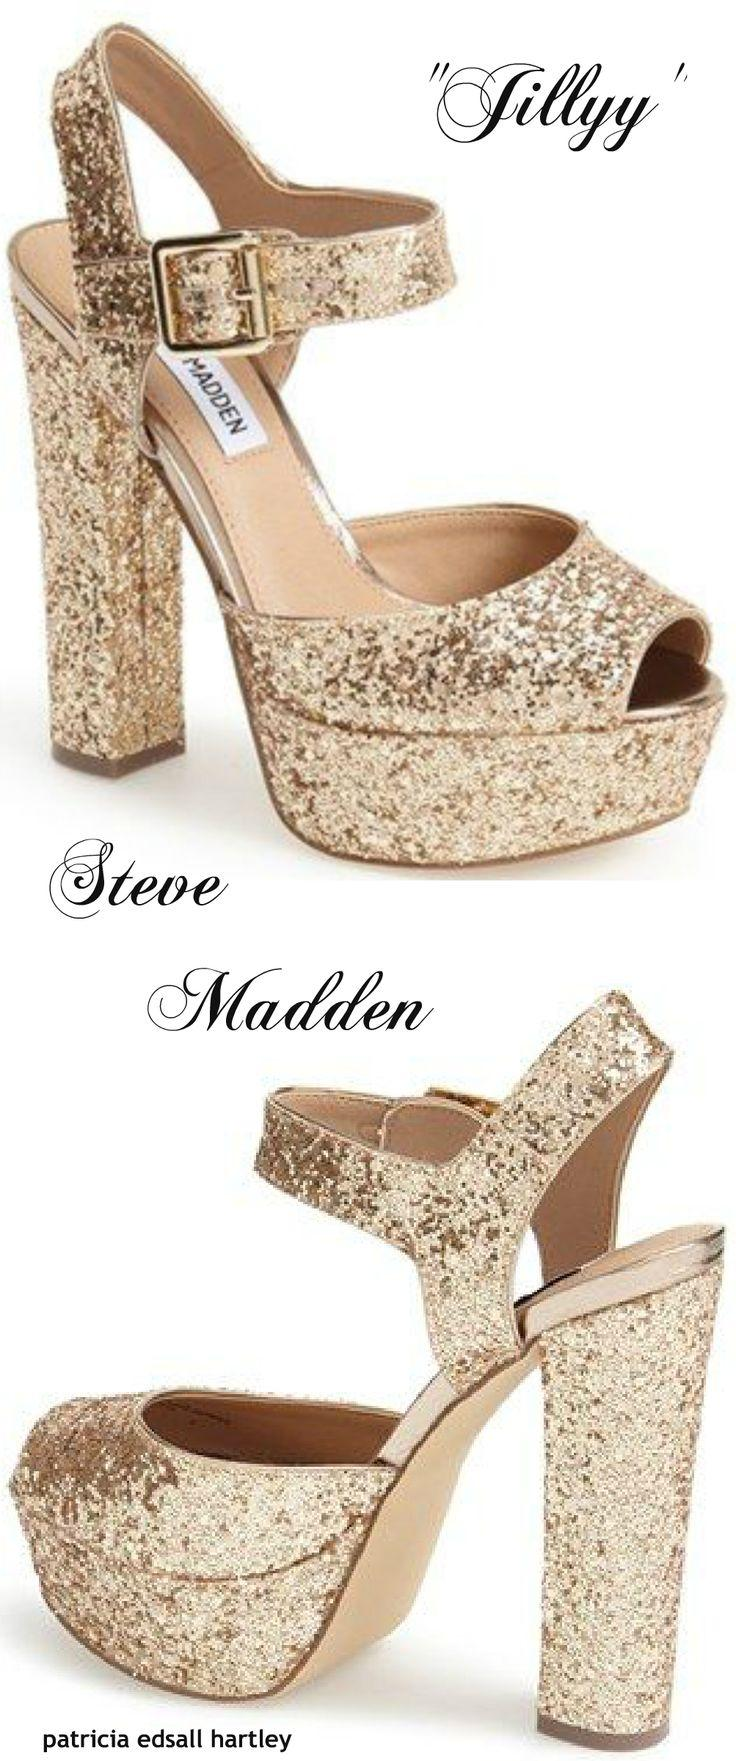 Nordstrom Online In Store Shoes Jewelry Clothing Makeup Dresses 2